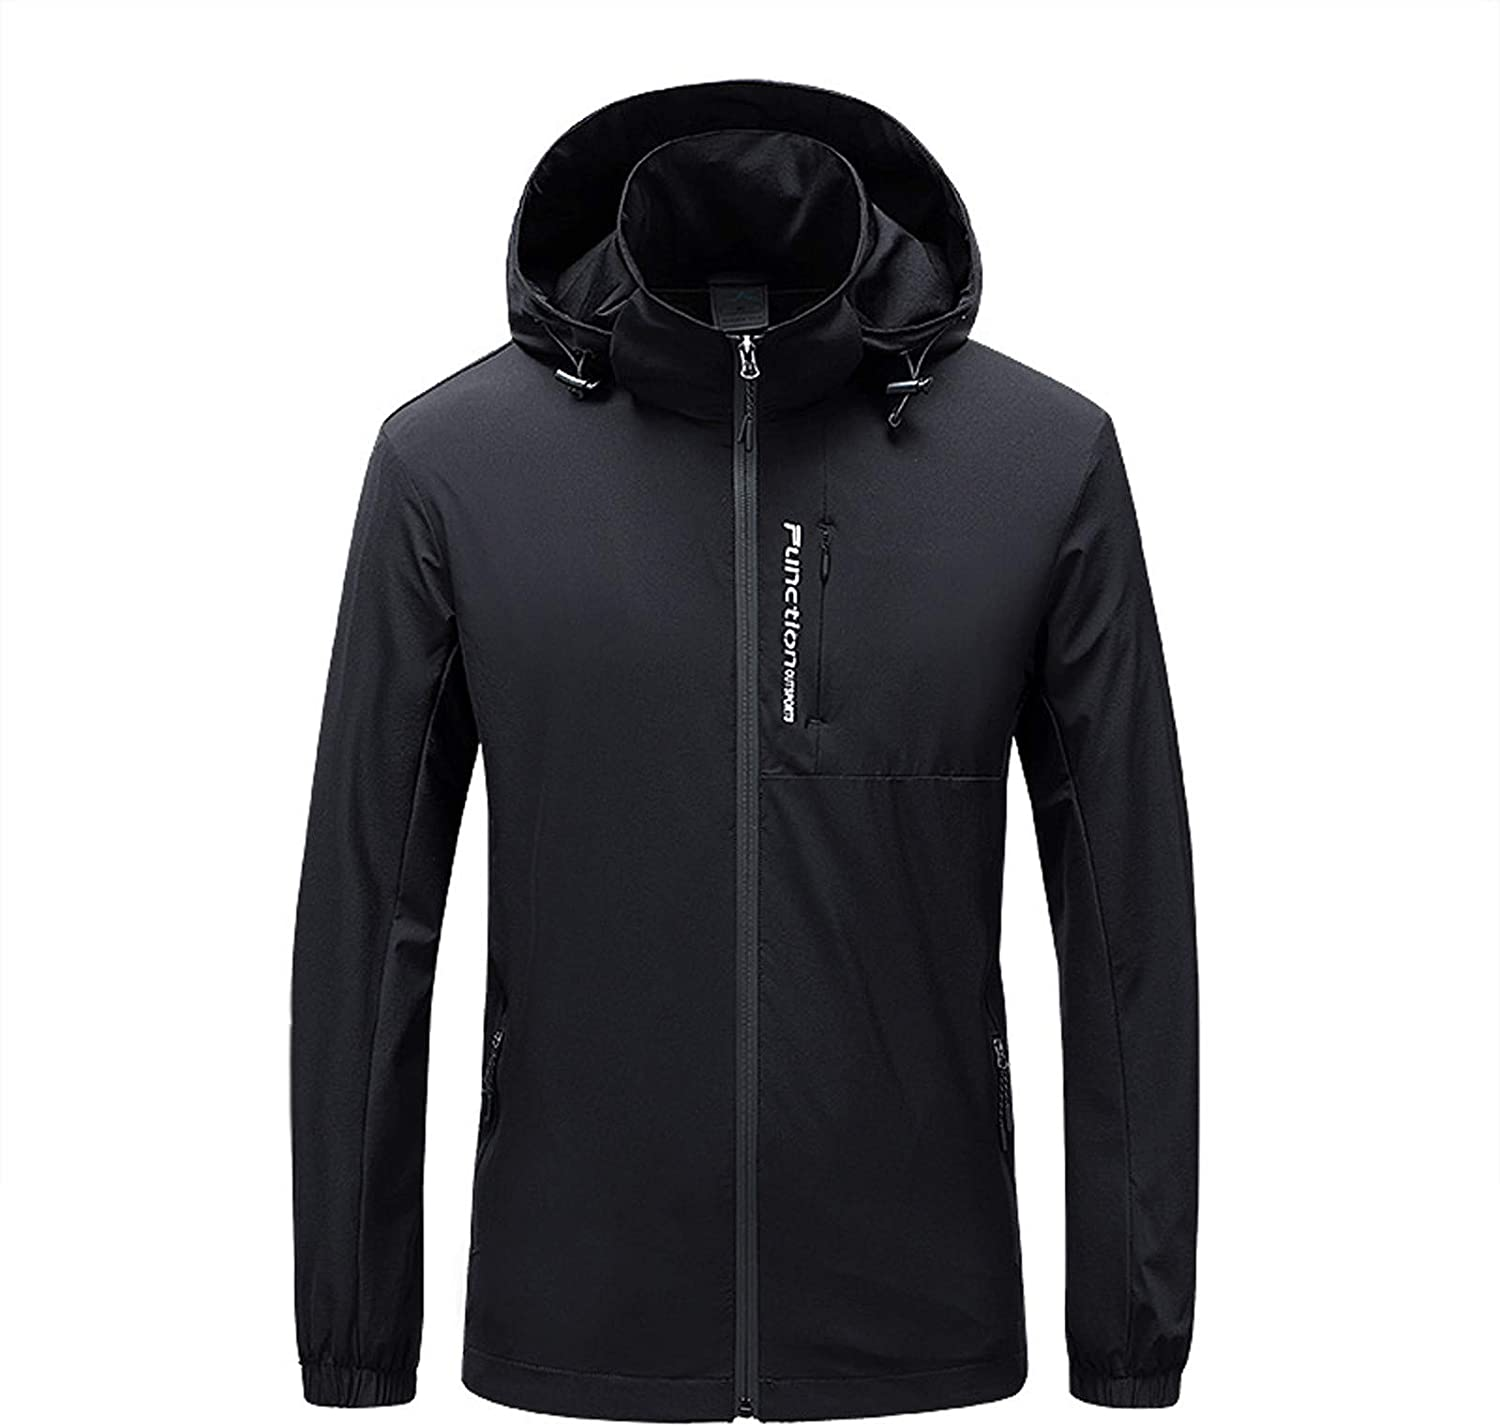 Men's Windbreaker Lightweight Warm Jacket Fashion Hooded Max 68% OFF W Don't miss the campaign Solid